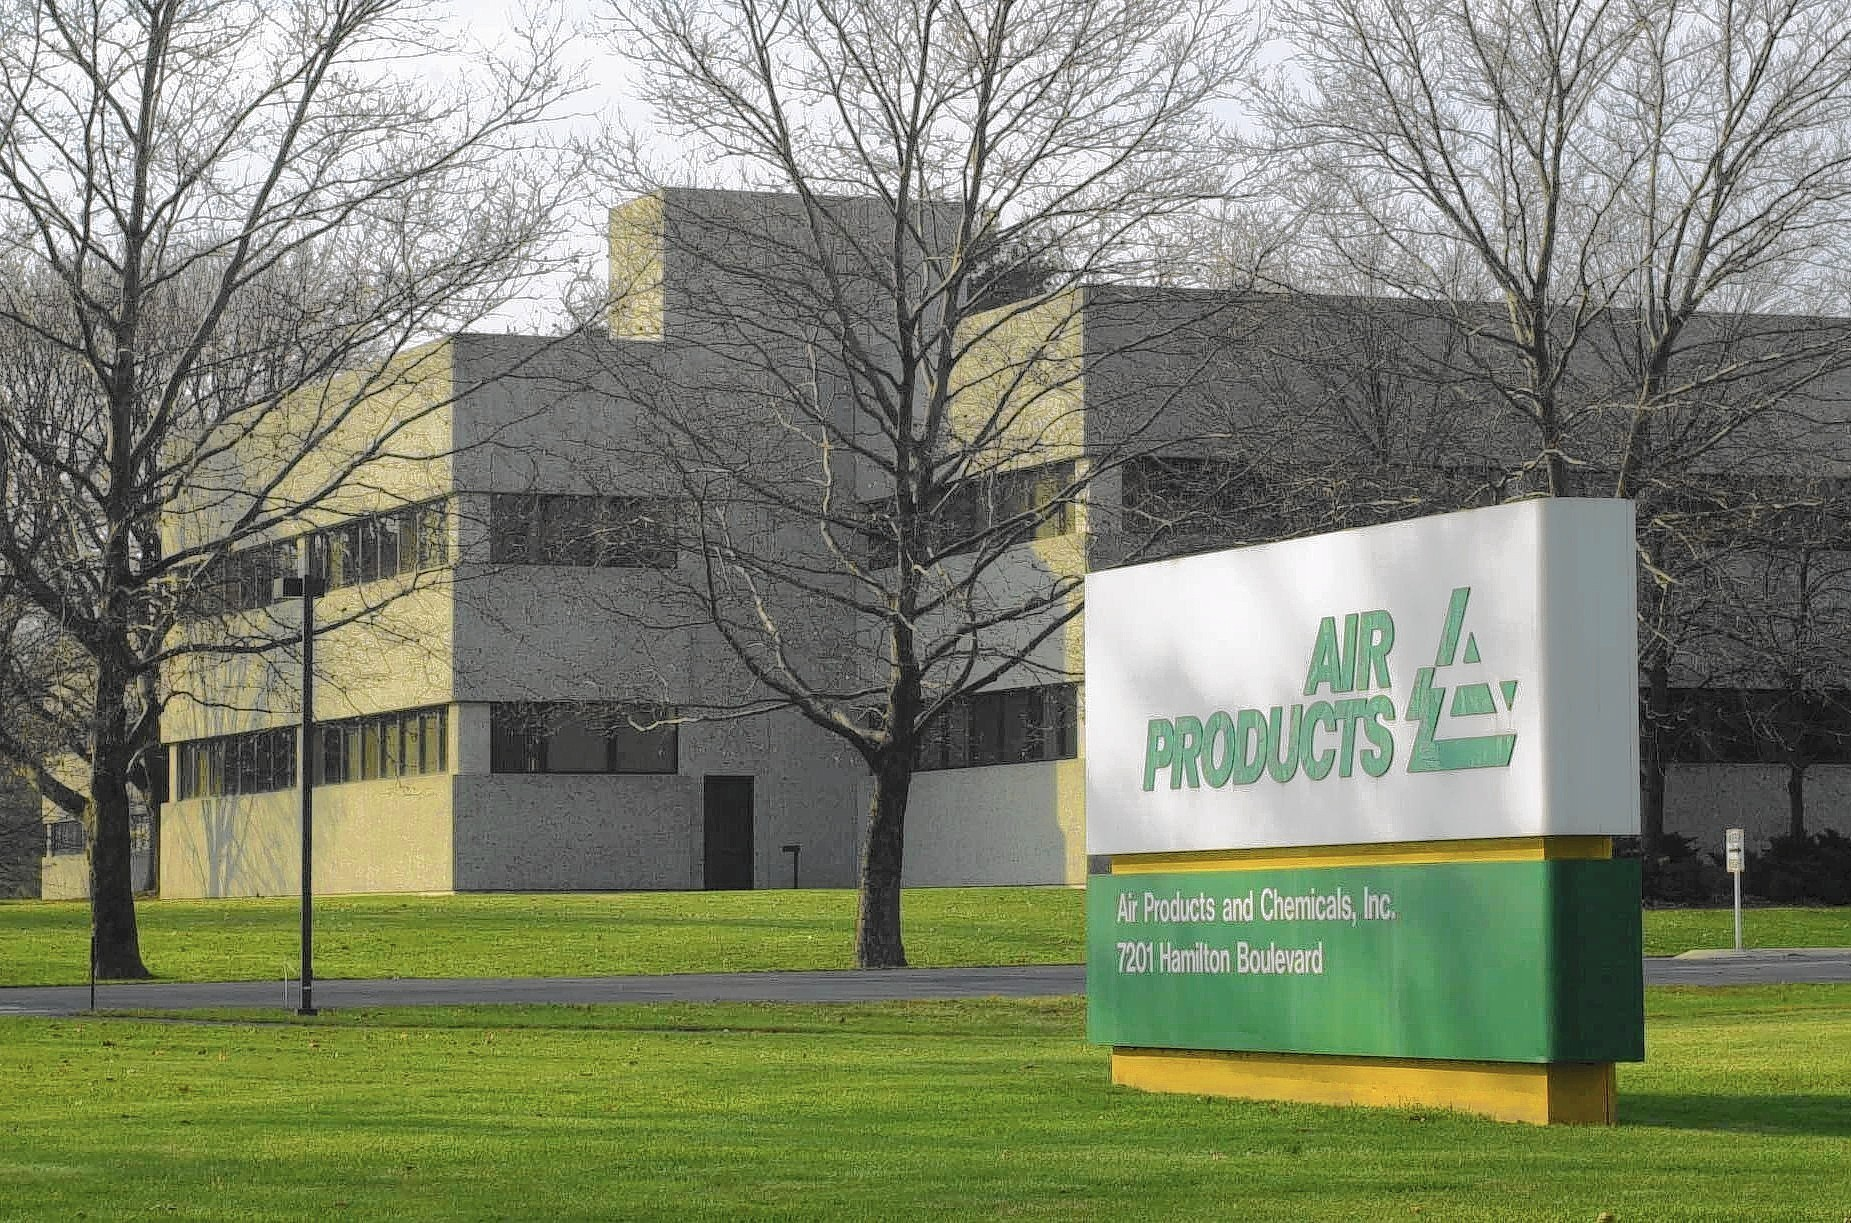 Air Products Announces Major Restructuring Lehigh Valley Business